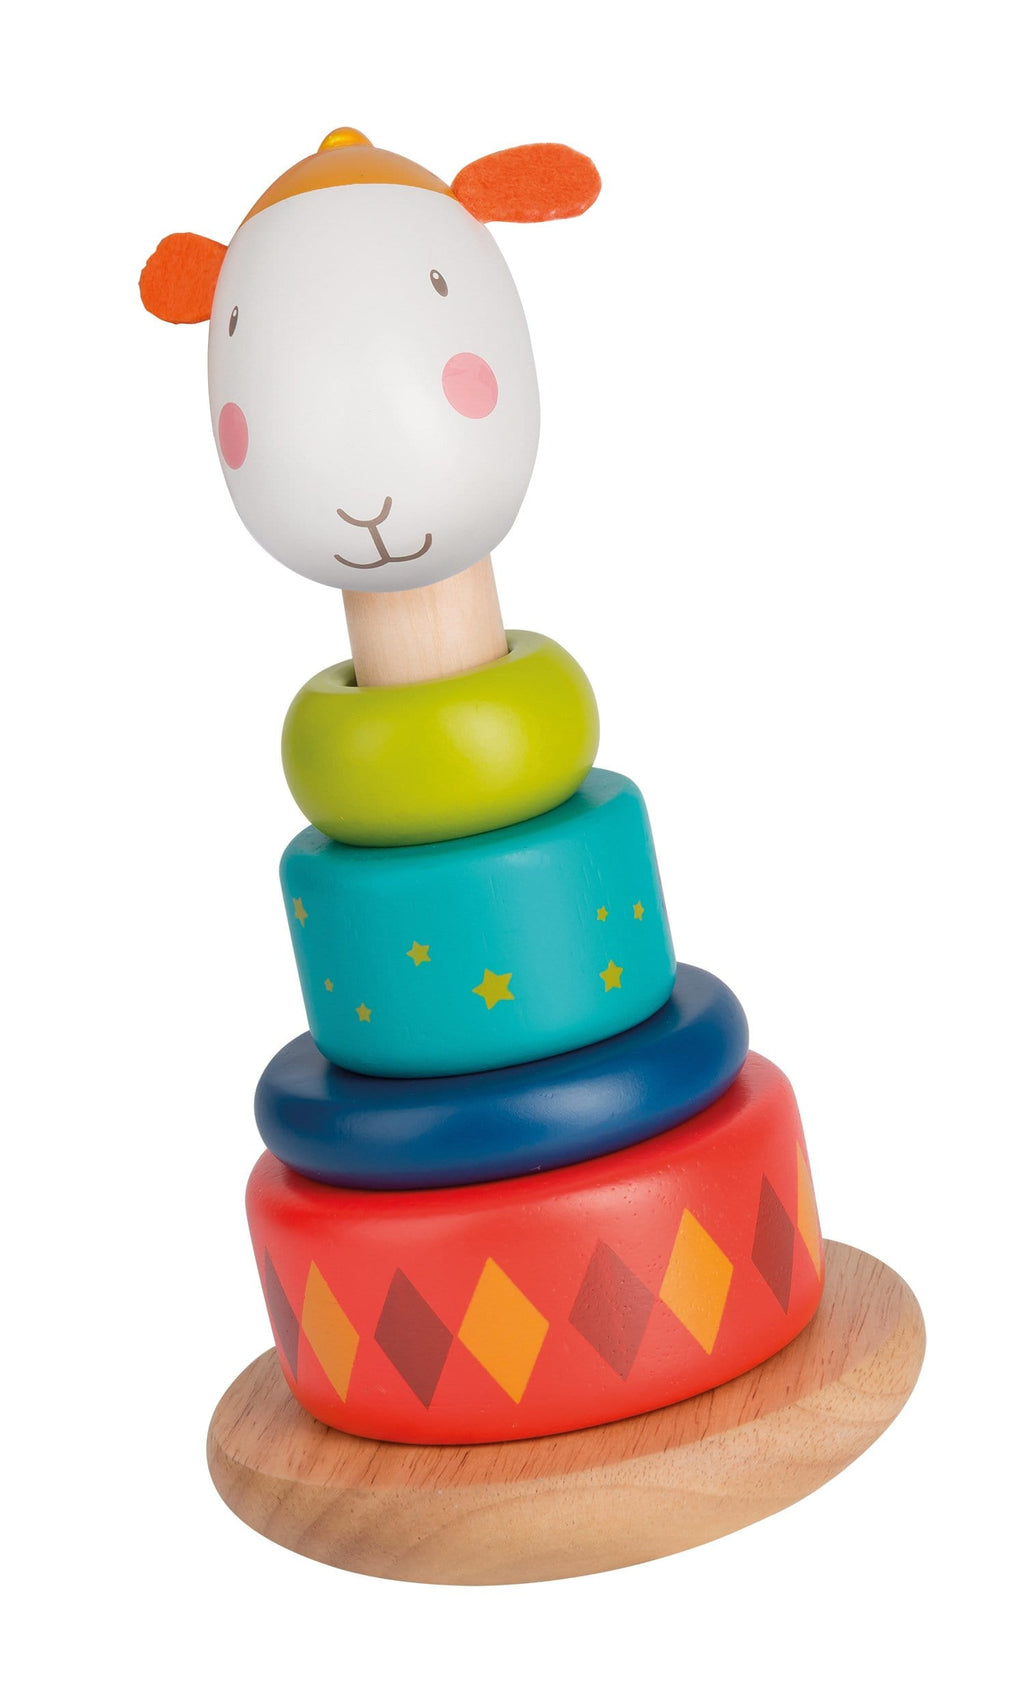 This stackable wobbly sheep Zephyr in lacquered wood with felt ears is a fun way to learn shapes and colours and develop motor skills.